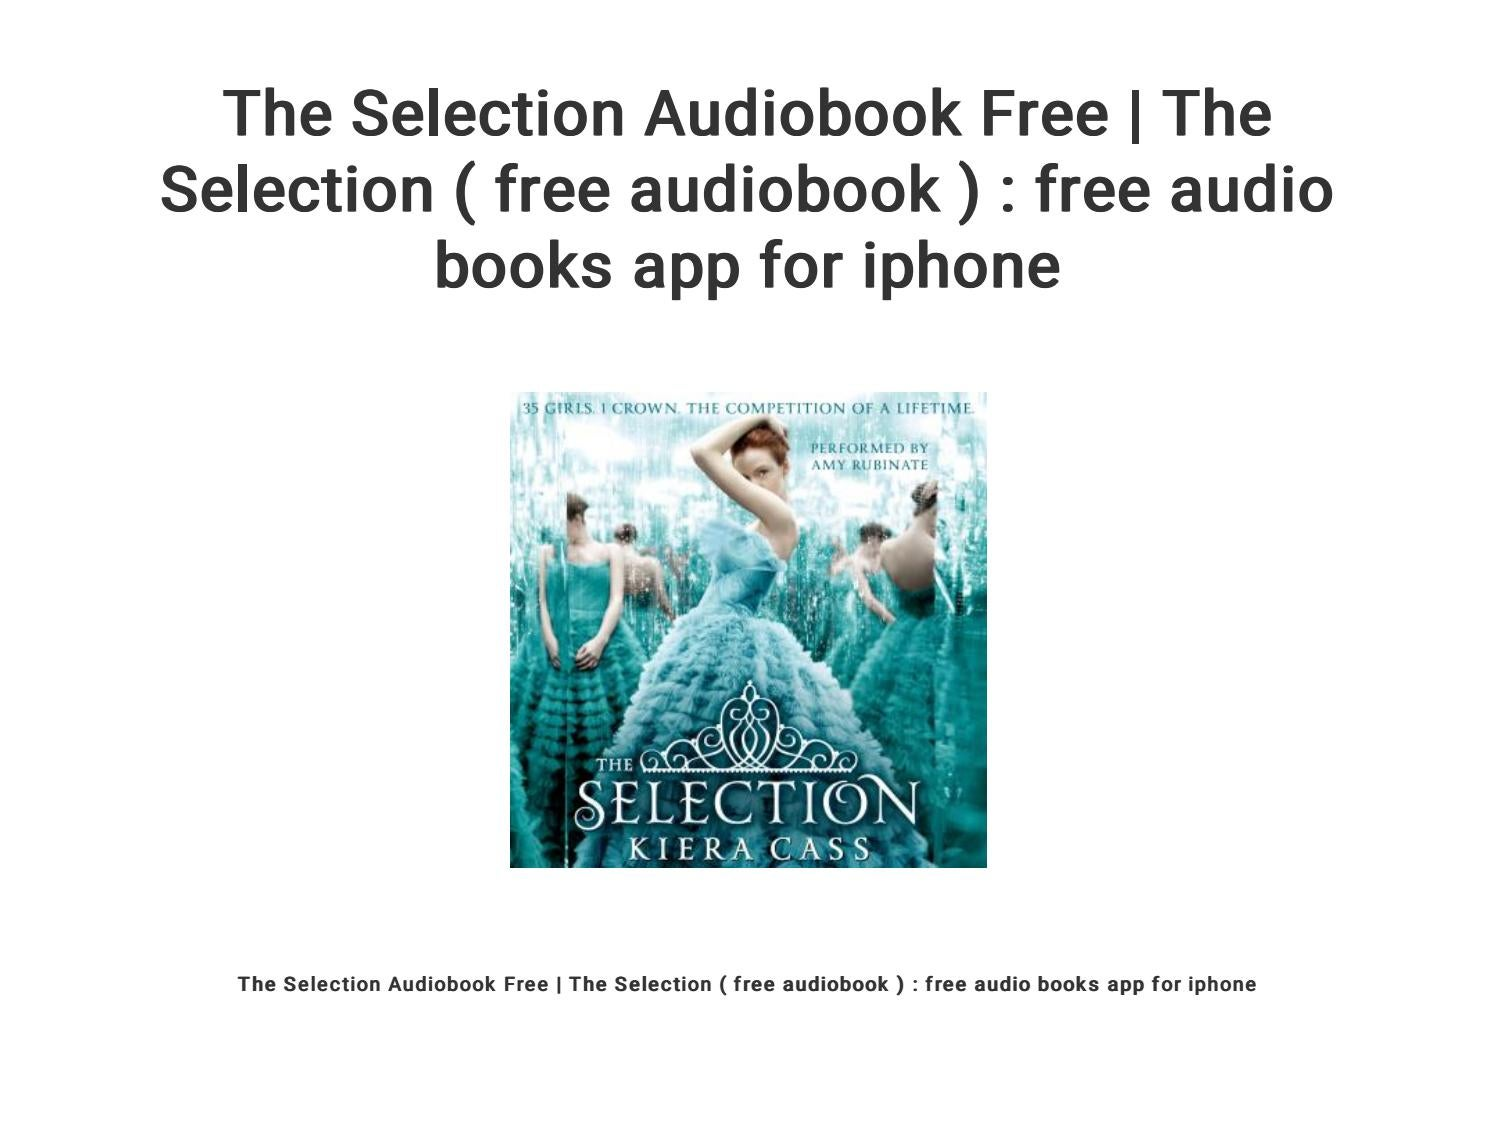 the selection kiera cass audiobook free